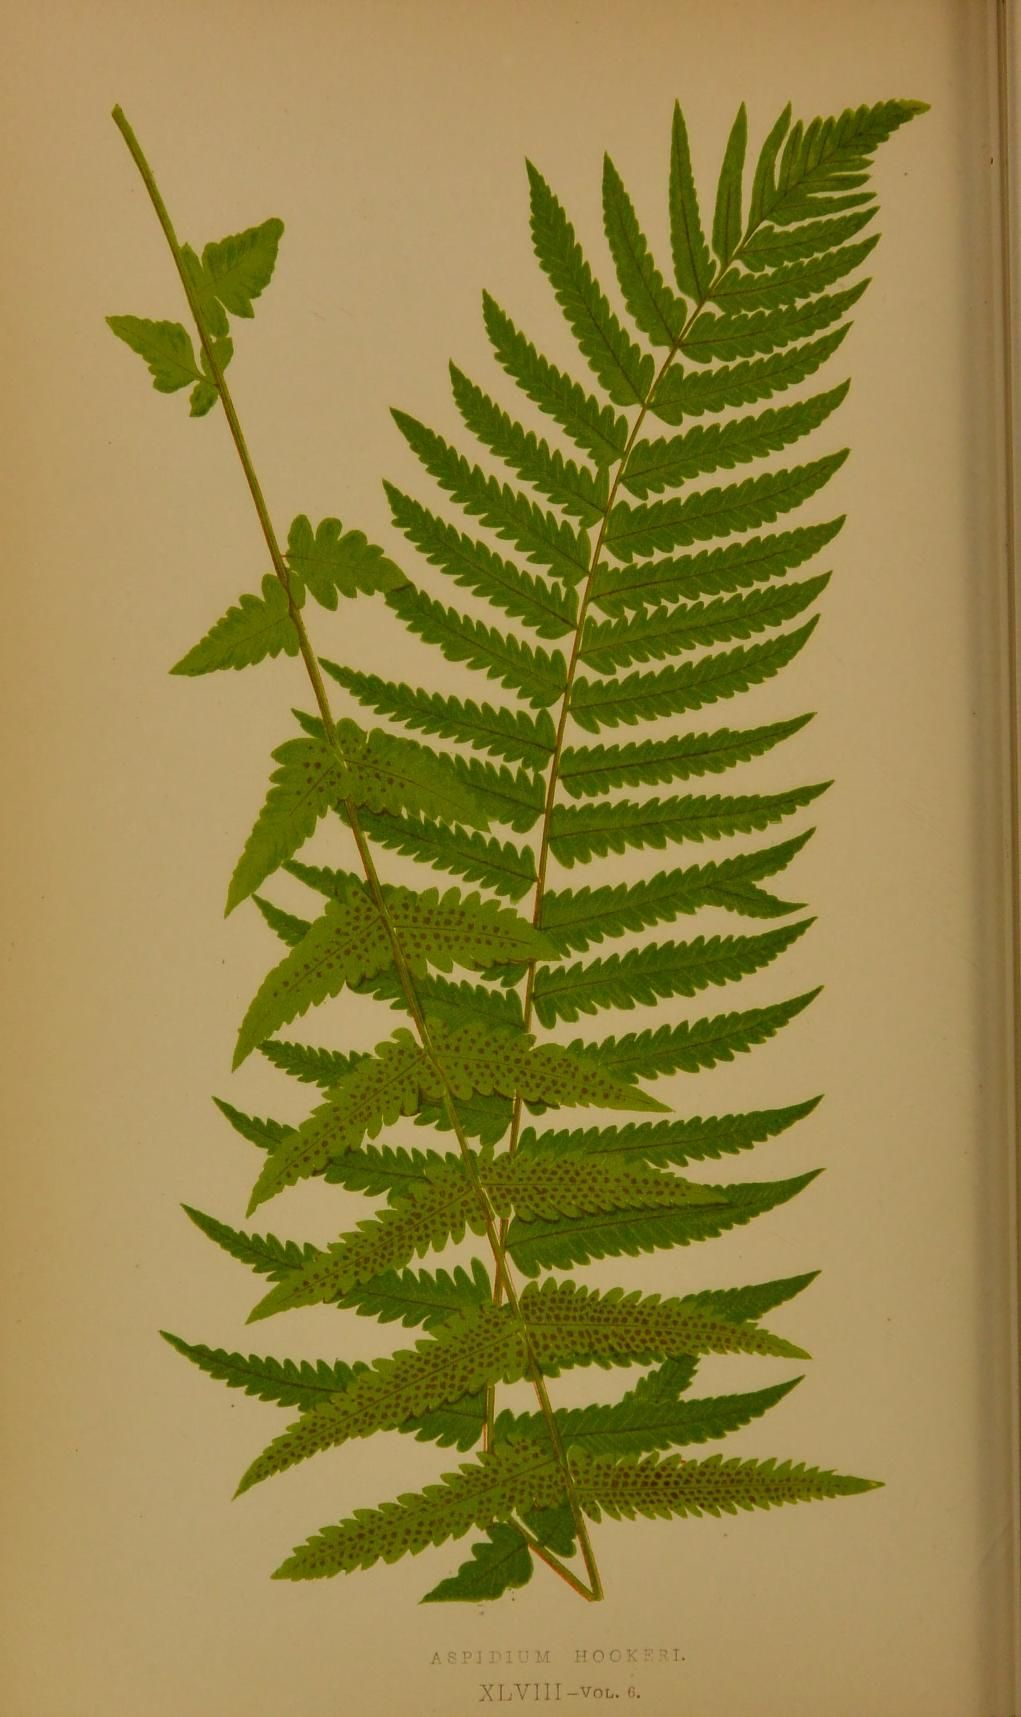 d8d8017caf660 Ferns: British and exotic... - 1856 | Biodiversity Heritage Library ...